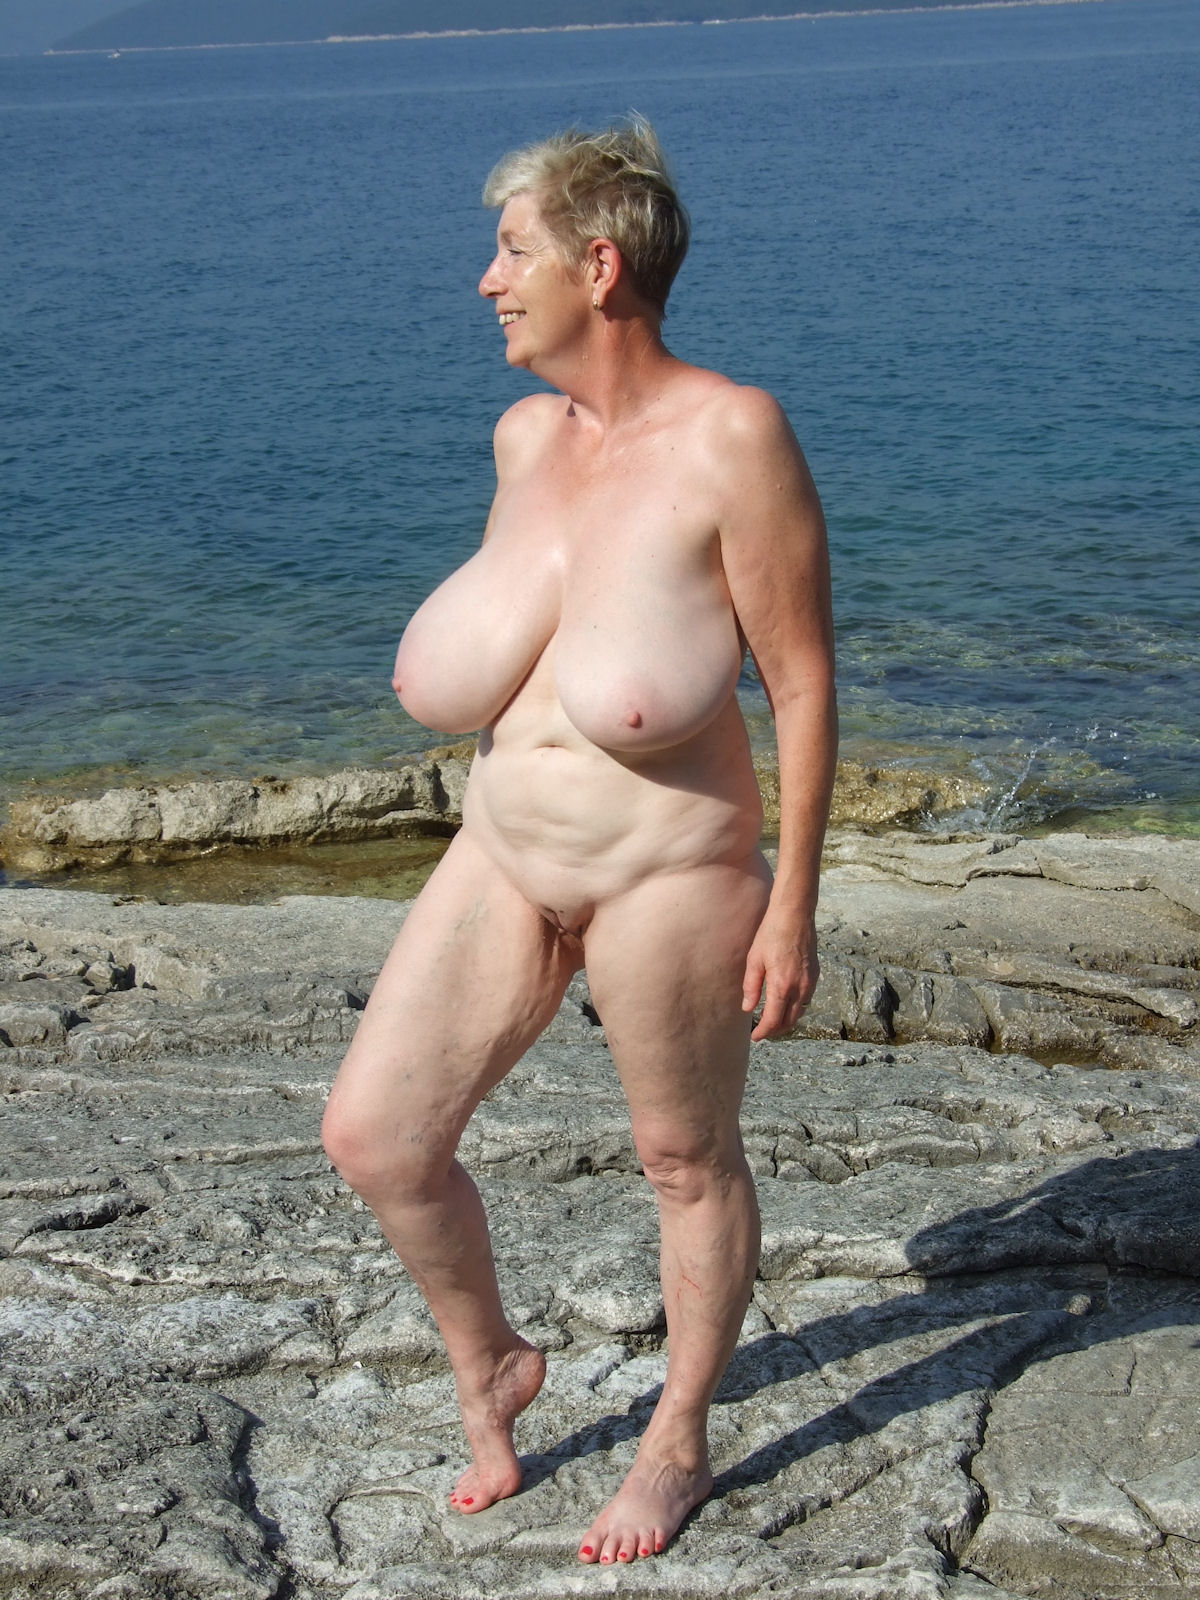 very old topless ladies pics